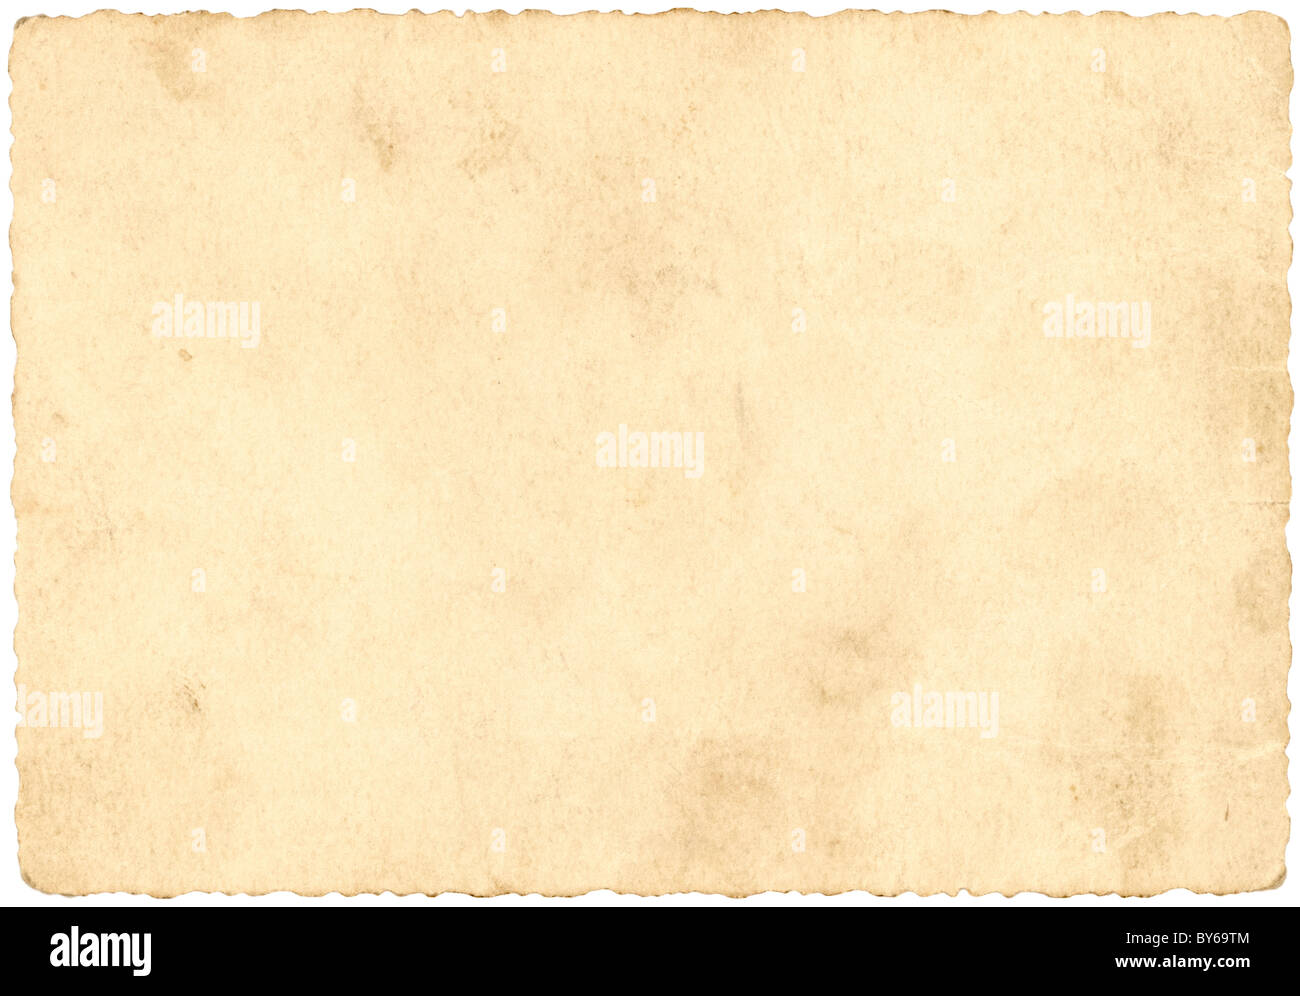 Background of old photo paper - Stock Image